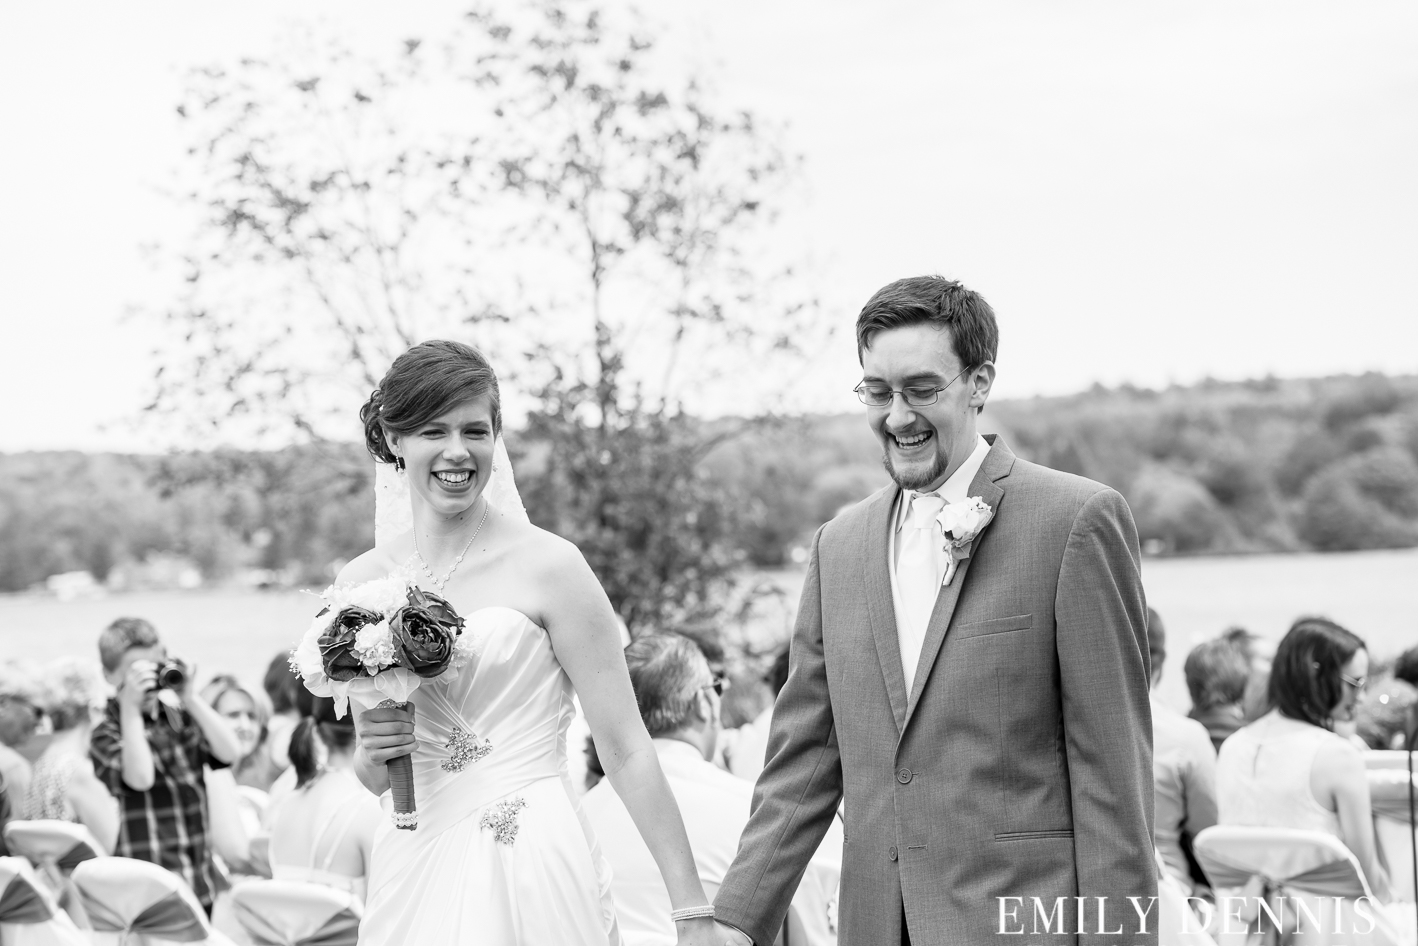 EMILY_DENNIS_PHOTOGRAPHY-56